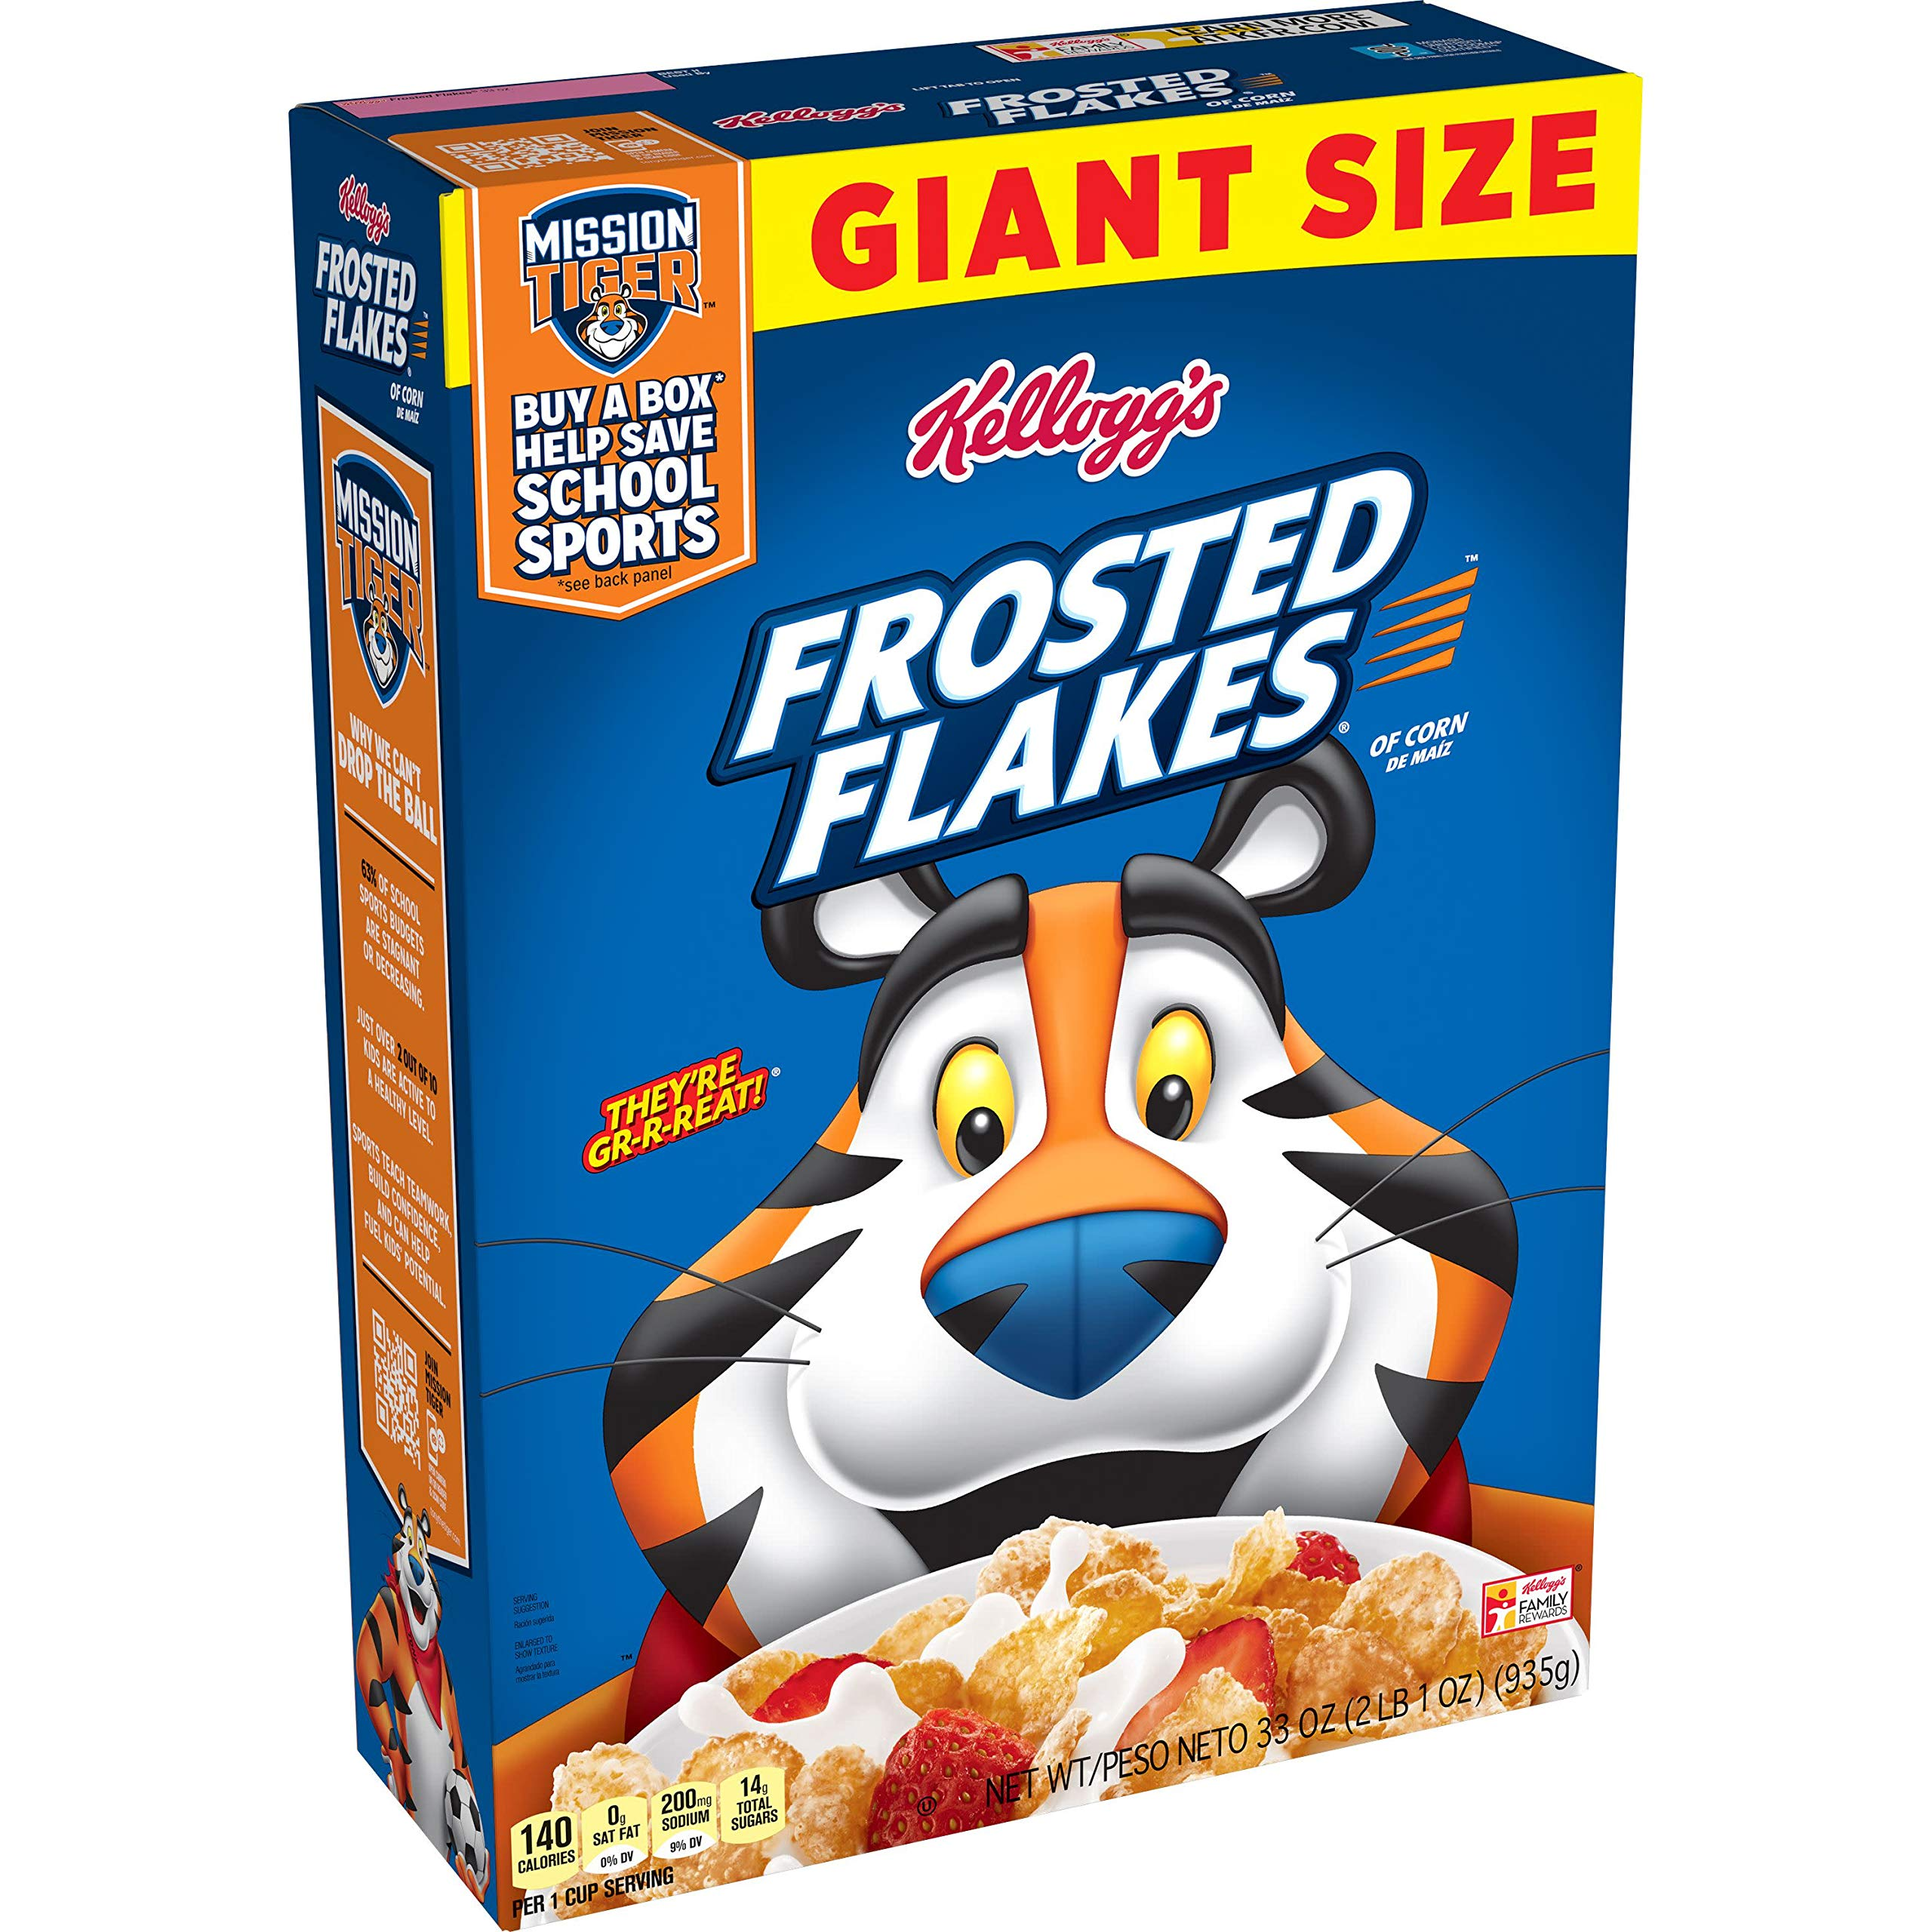 Kellogg's Frosted Flakes Cereal - Sweet Breakfast that Lets Your Great Out, Fat-Free, Giant-Size, 33 Oz Box